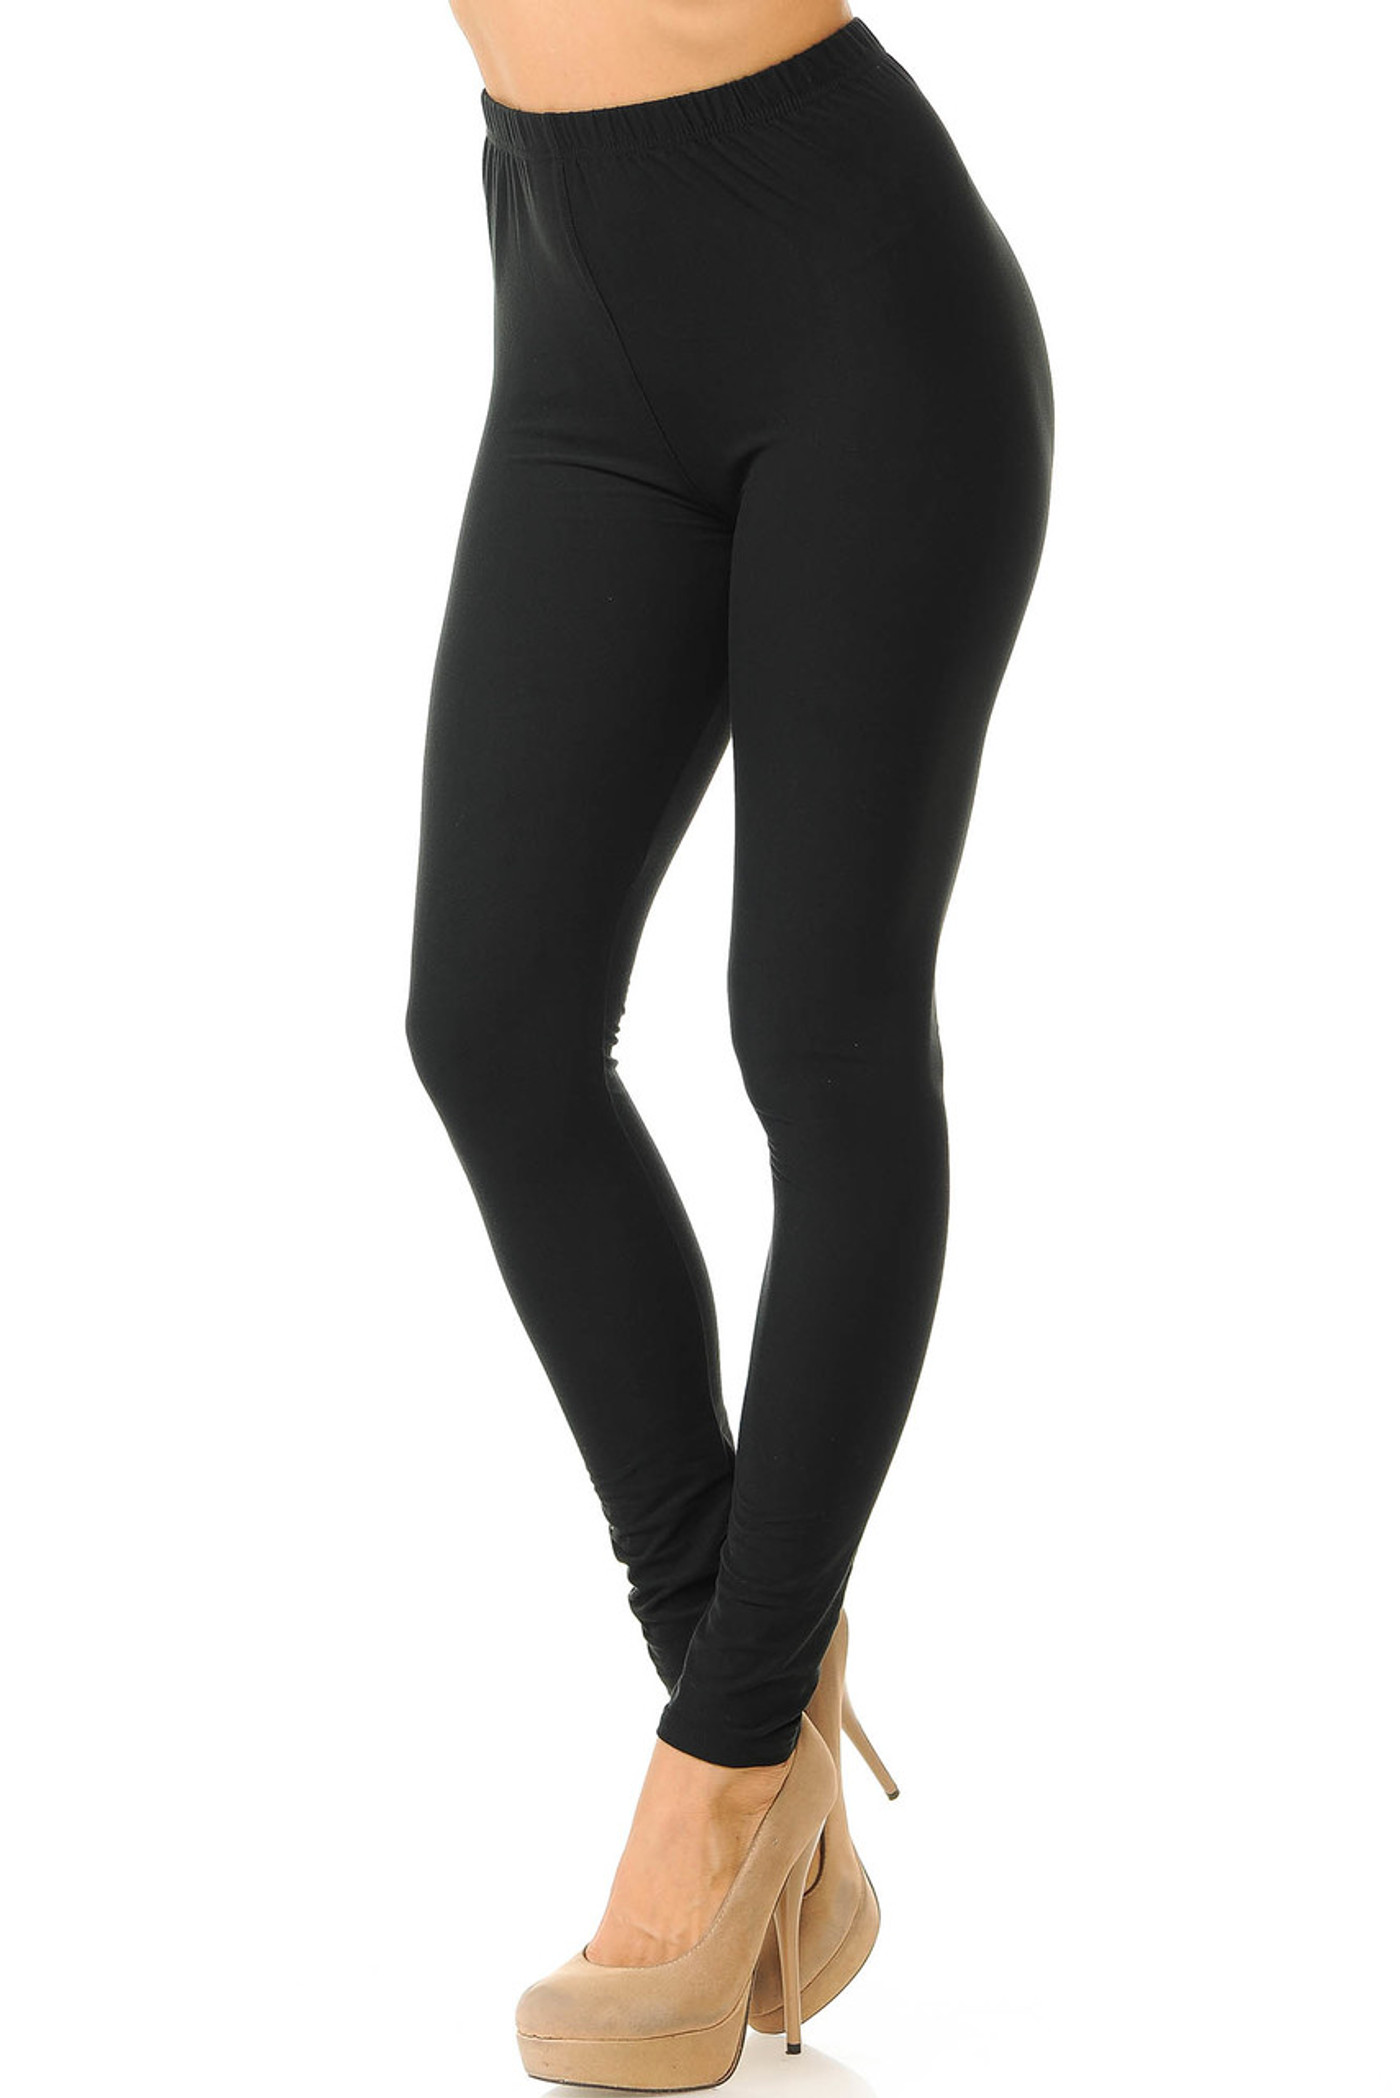 Black  Basic Solid Buttery Soft Leggings - New Mix